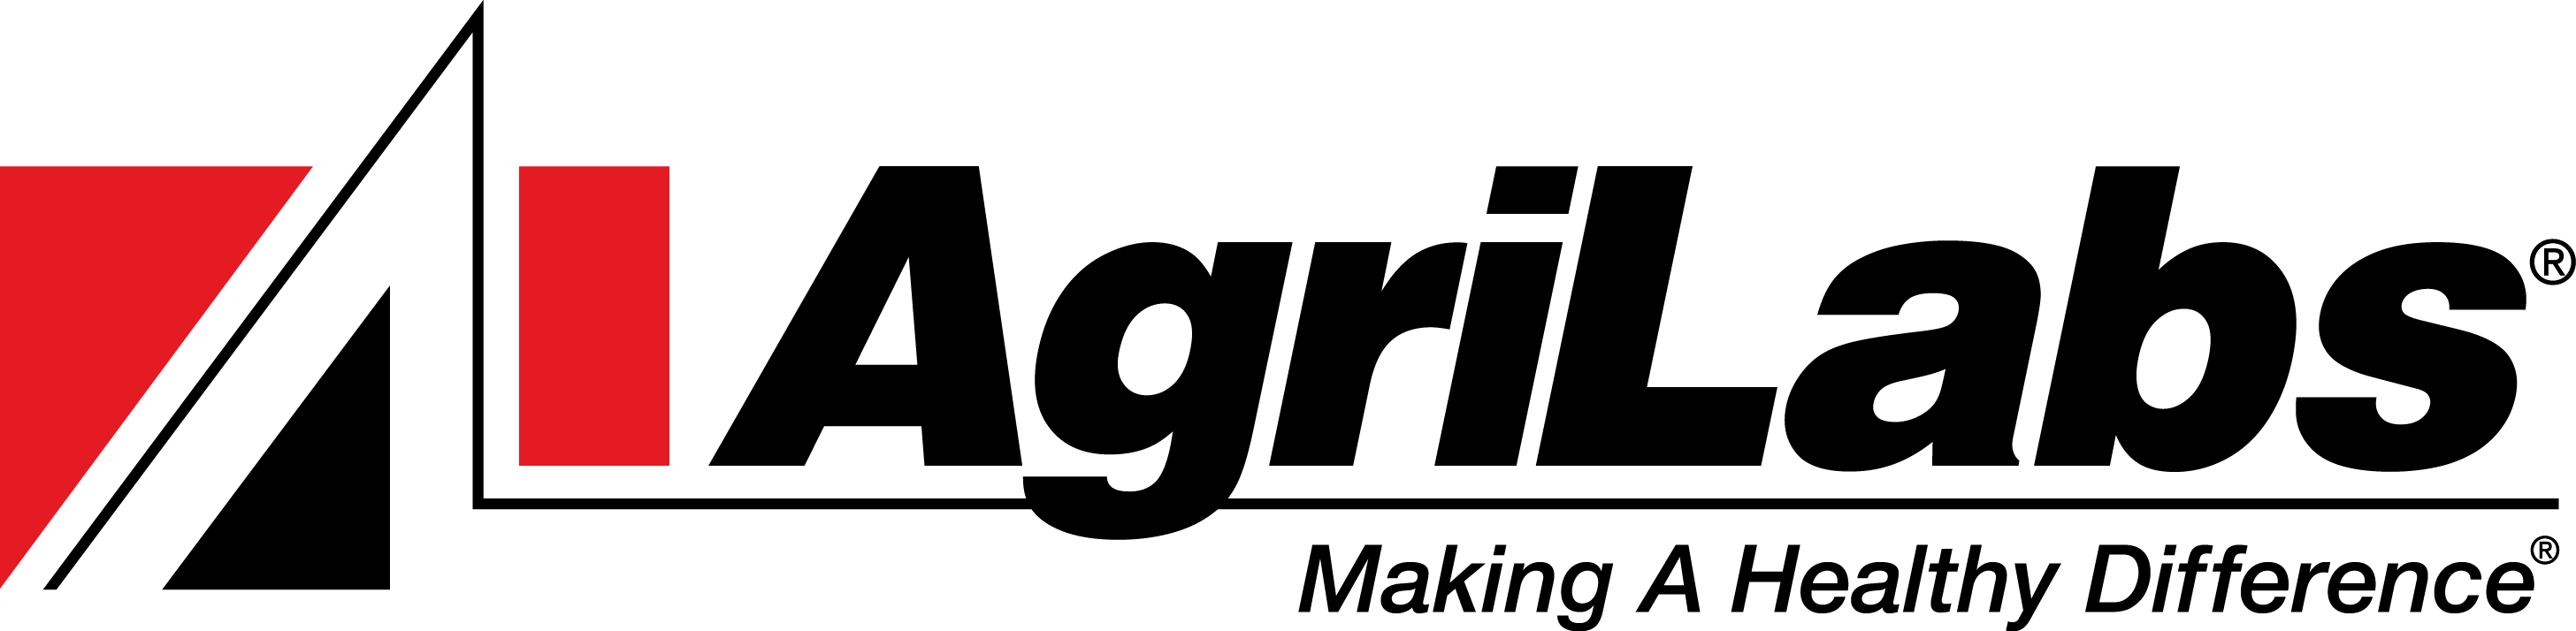 AgriLabs_logo_w_tag.png